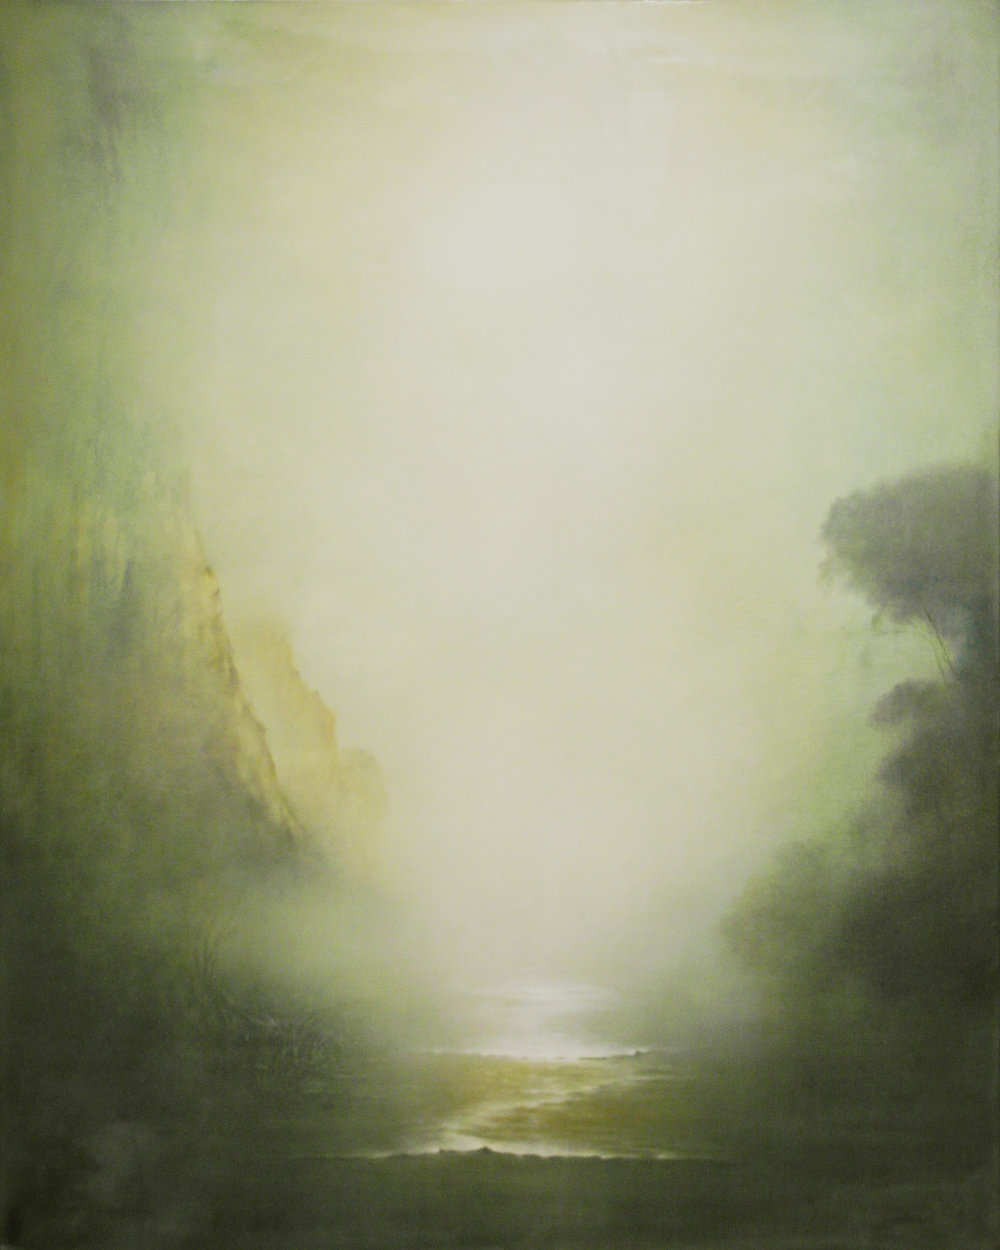 untitled #5108, 2010 oil and wax on linen on panel, 60 x 48 inches